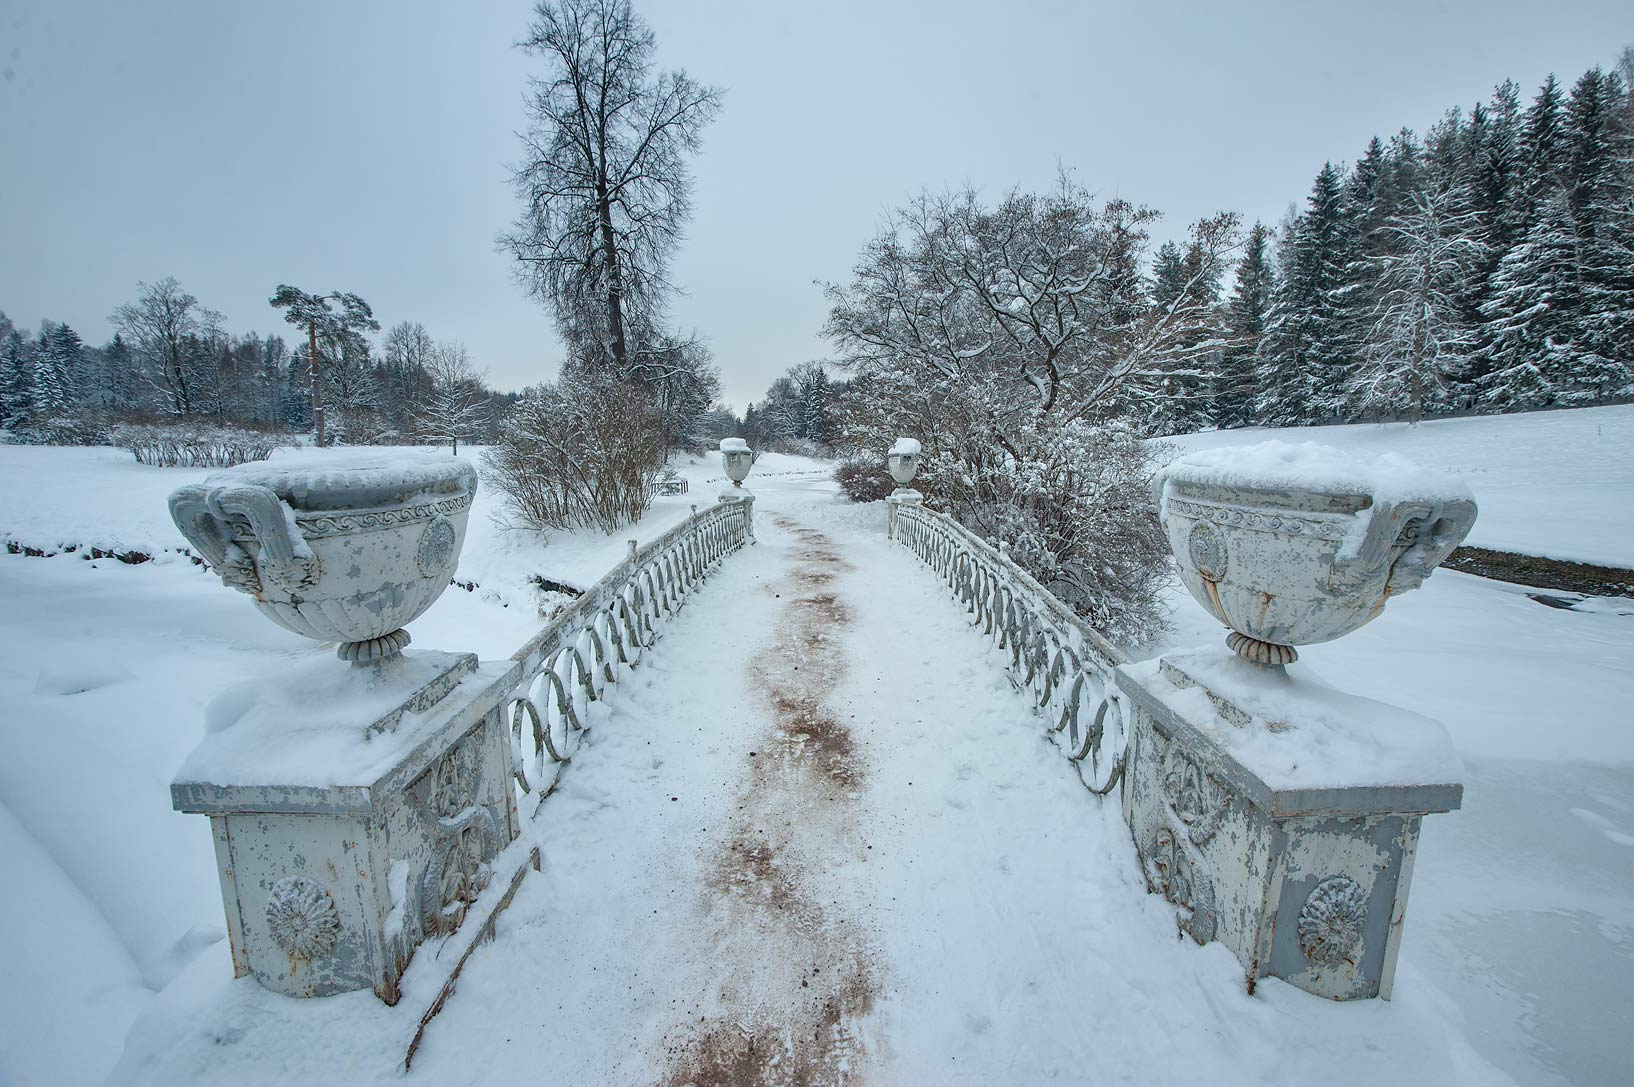 Bridge of Eleninskaya Alley in Pavlovsk Park. Pavlovsk, a suburb of St.Petersburg, Russia